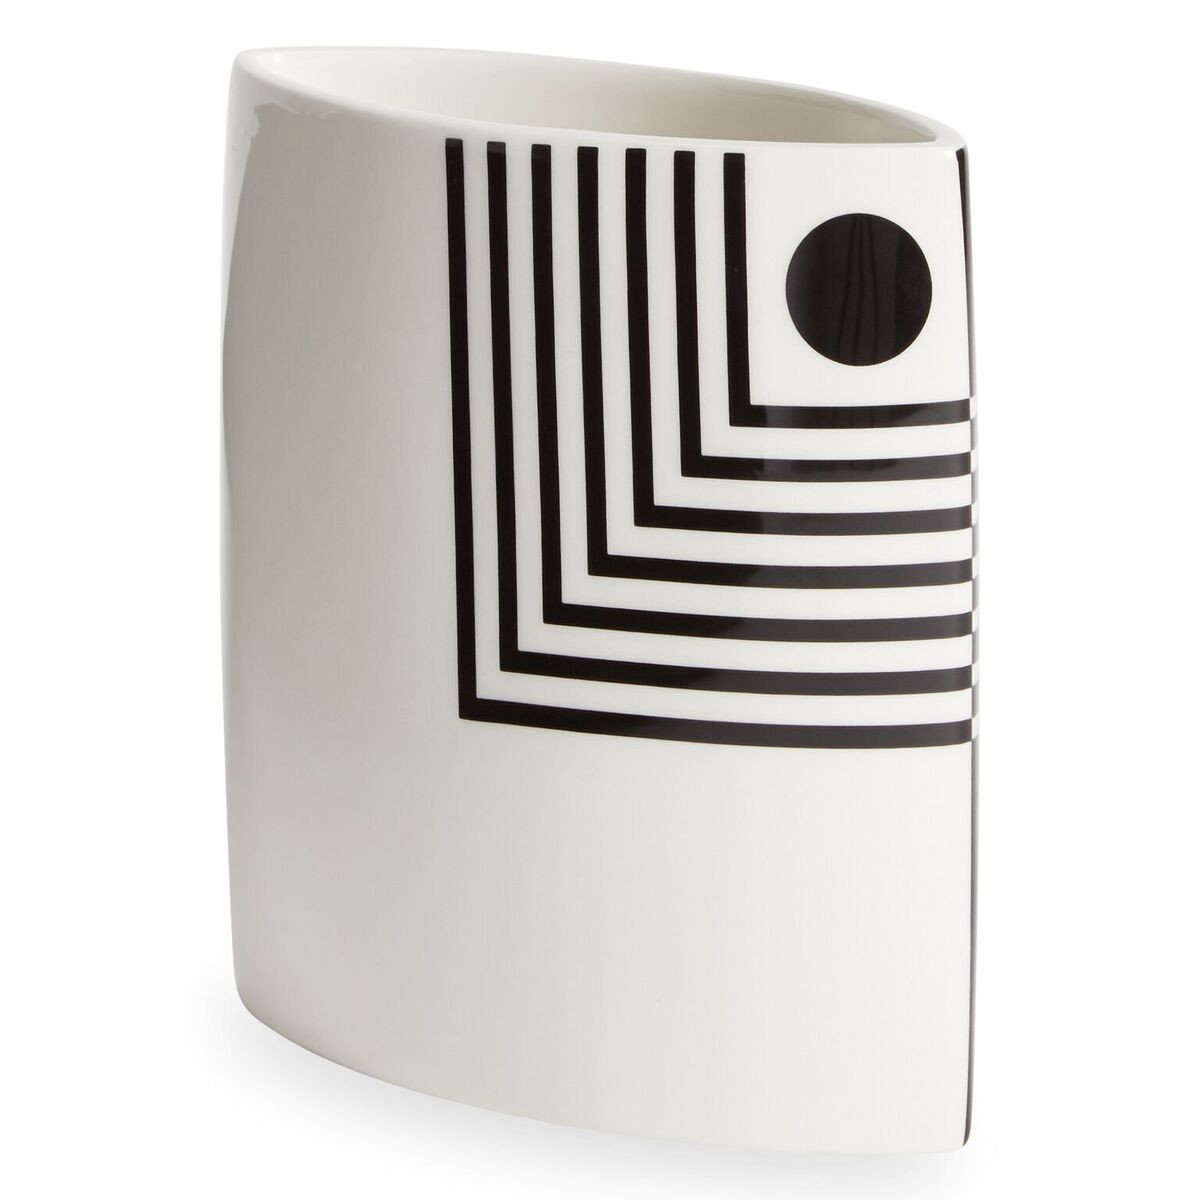 jonathan adler i scream vase of best pieces from now house by jonathan adler amazon collection with 1539781681 65nrjmg 1539781673